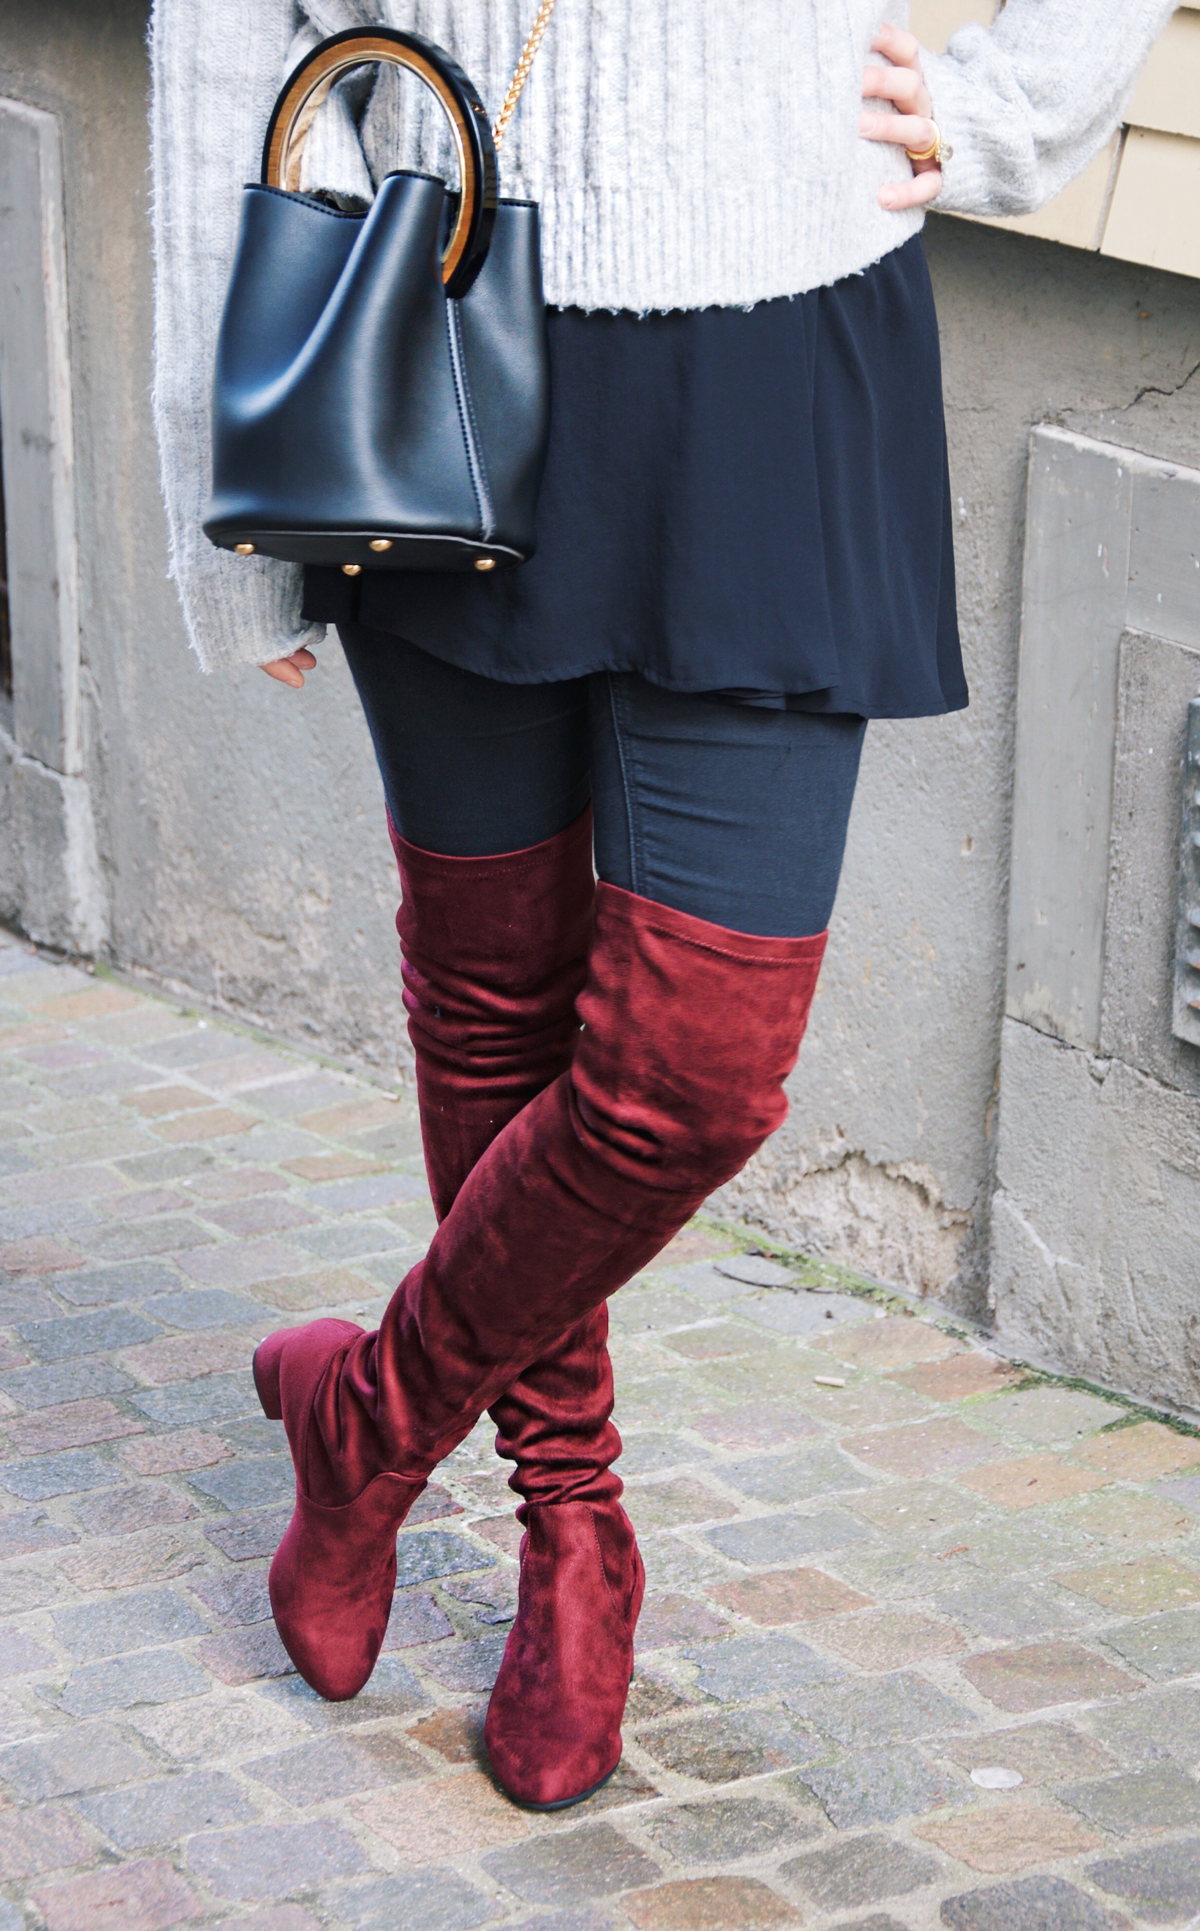 Andre Steiner, Fashion blogger from Strawberries 'n' Champagne wear red overknee boots from Steve Madden, Pants from Topshop and a sweaterf rom H&M. The bag is from a boutique in Hong Kong.